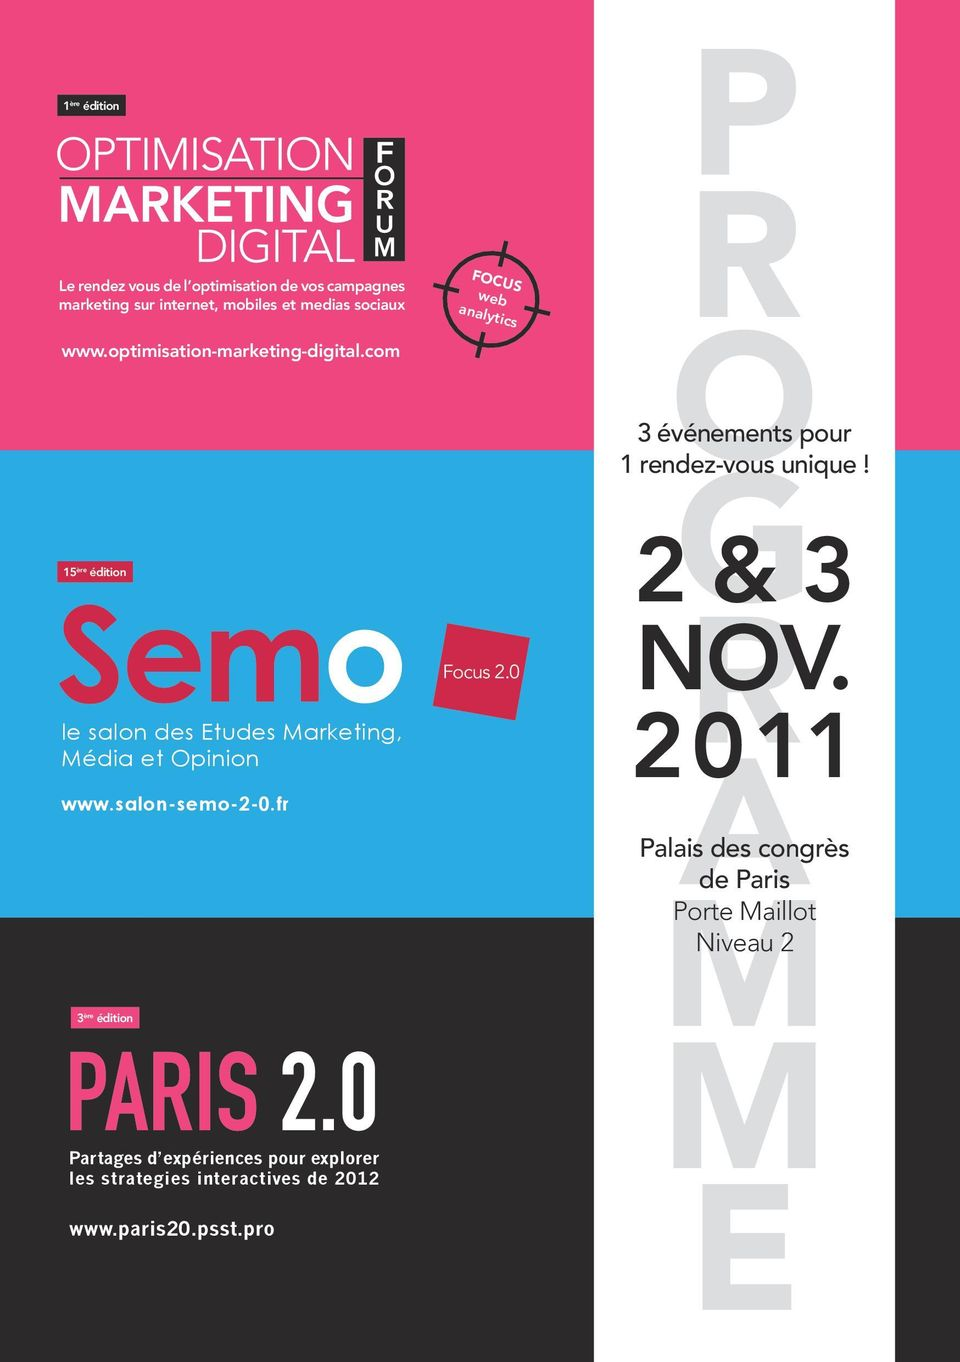 15 ère édition le salon des Etudes Marketing, Média et Opinion 3 ère édition Focus 2.0 o gr 2 & 3 NOV.